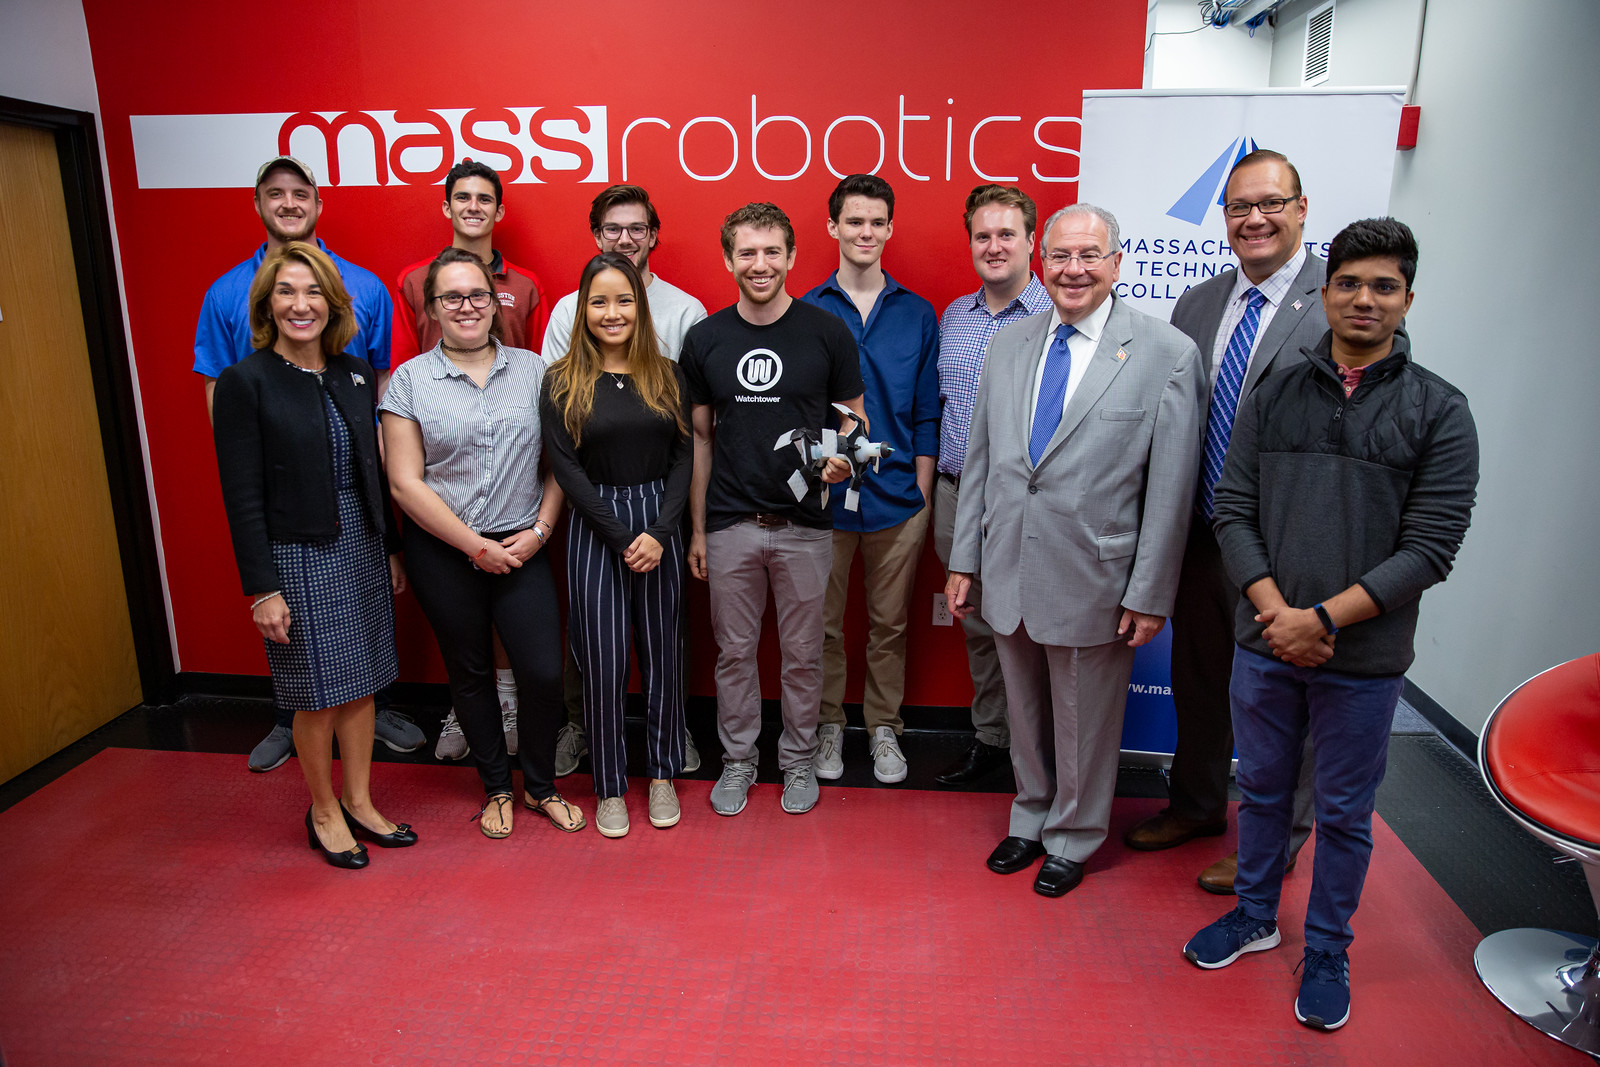 Lt. Governor Polito visits MassRobotics | by Office of Governor Baker